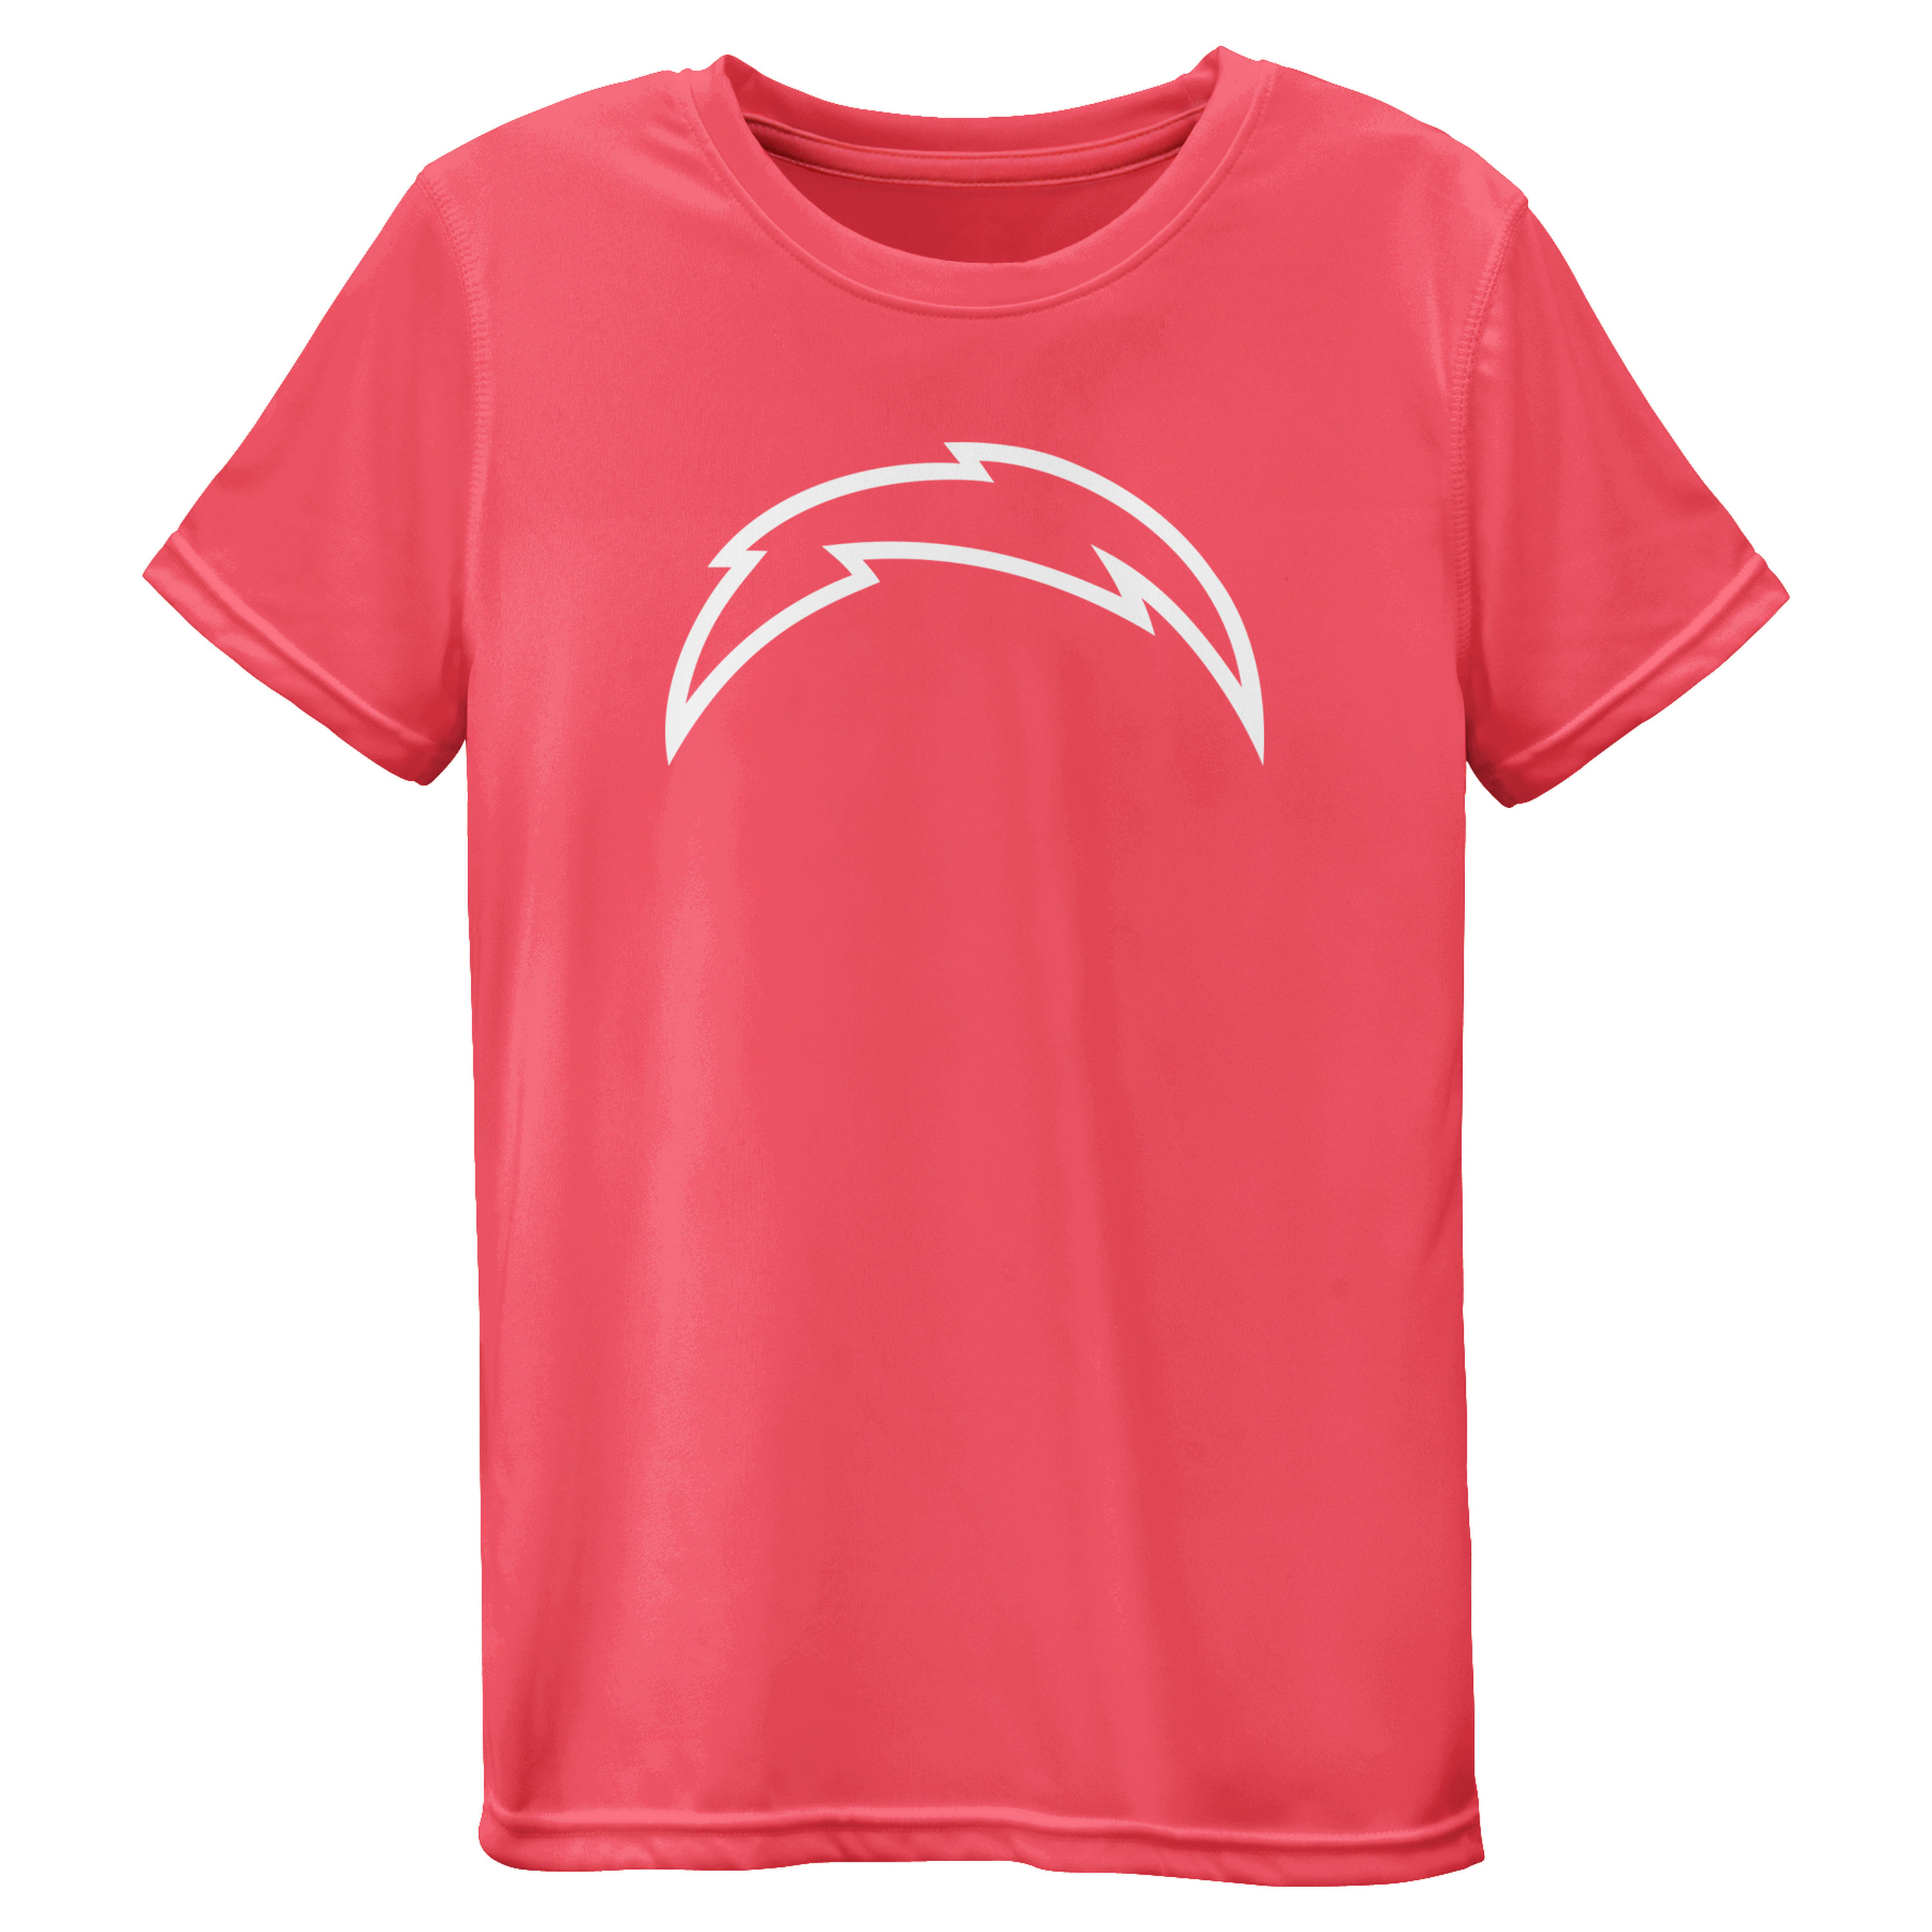 Los Angeles Chargers Girls Youth Pink Neon Logo T-Shirt